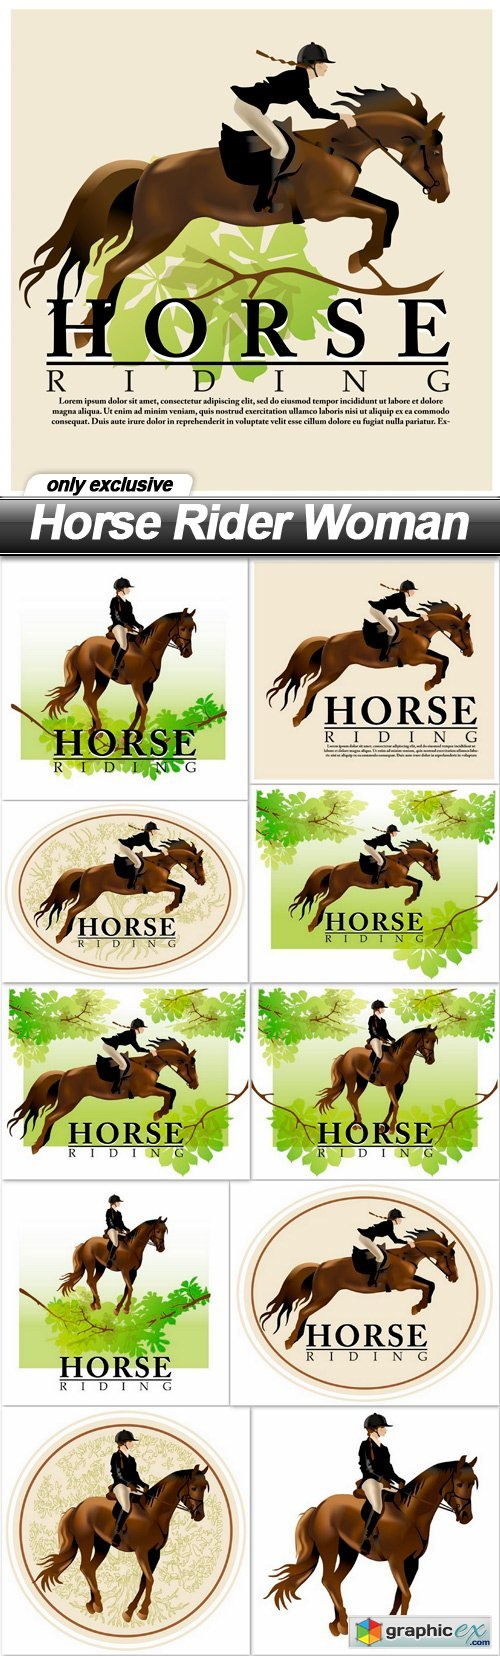 Horse Rider Woman - 11 EPS